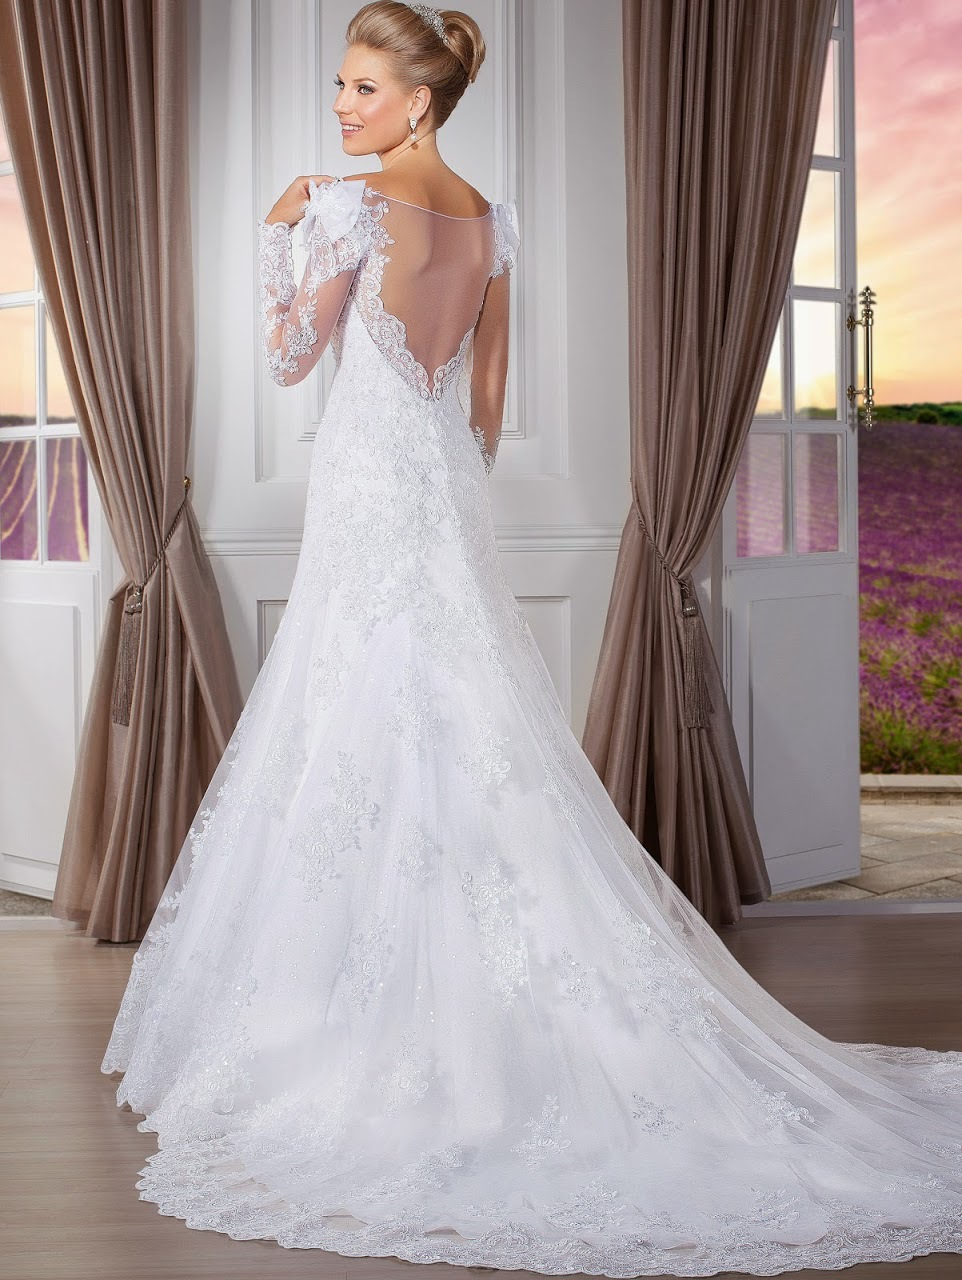 Long Sleeves Lace Wedding Dress Memraid Tail Beaded Y Backless Detachable A228 In Dresses From Weddings